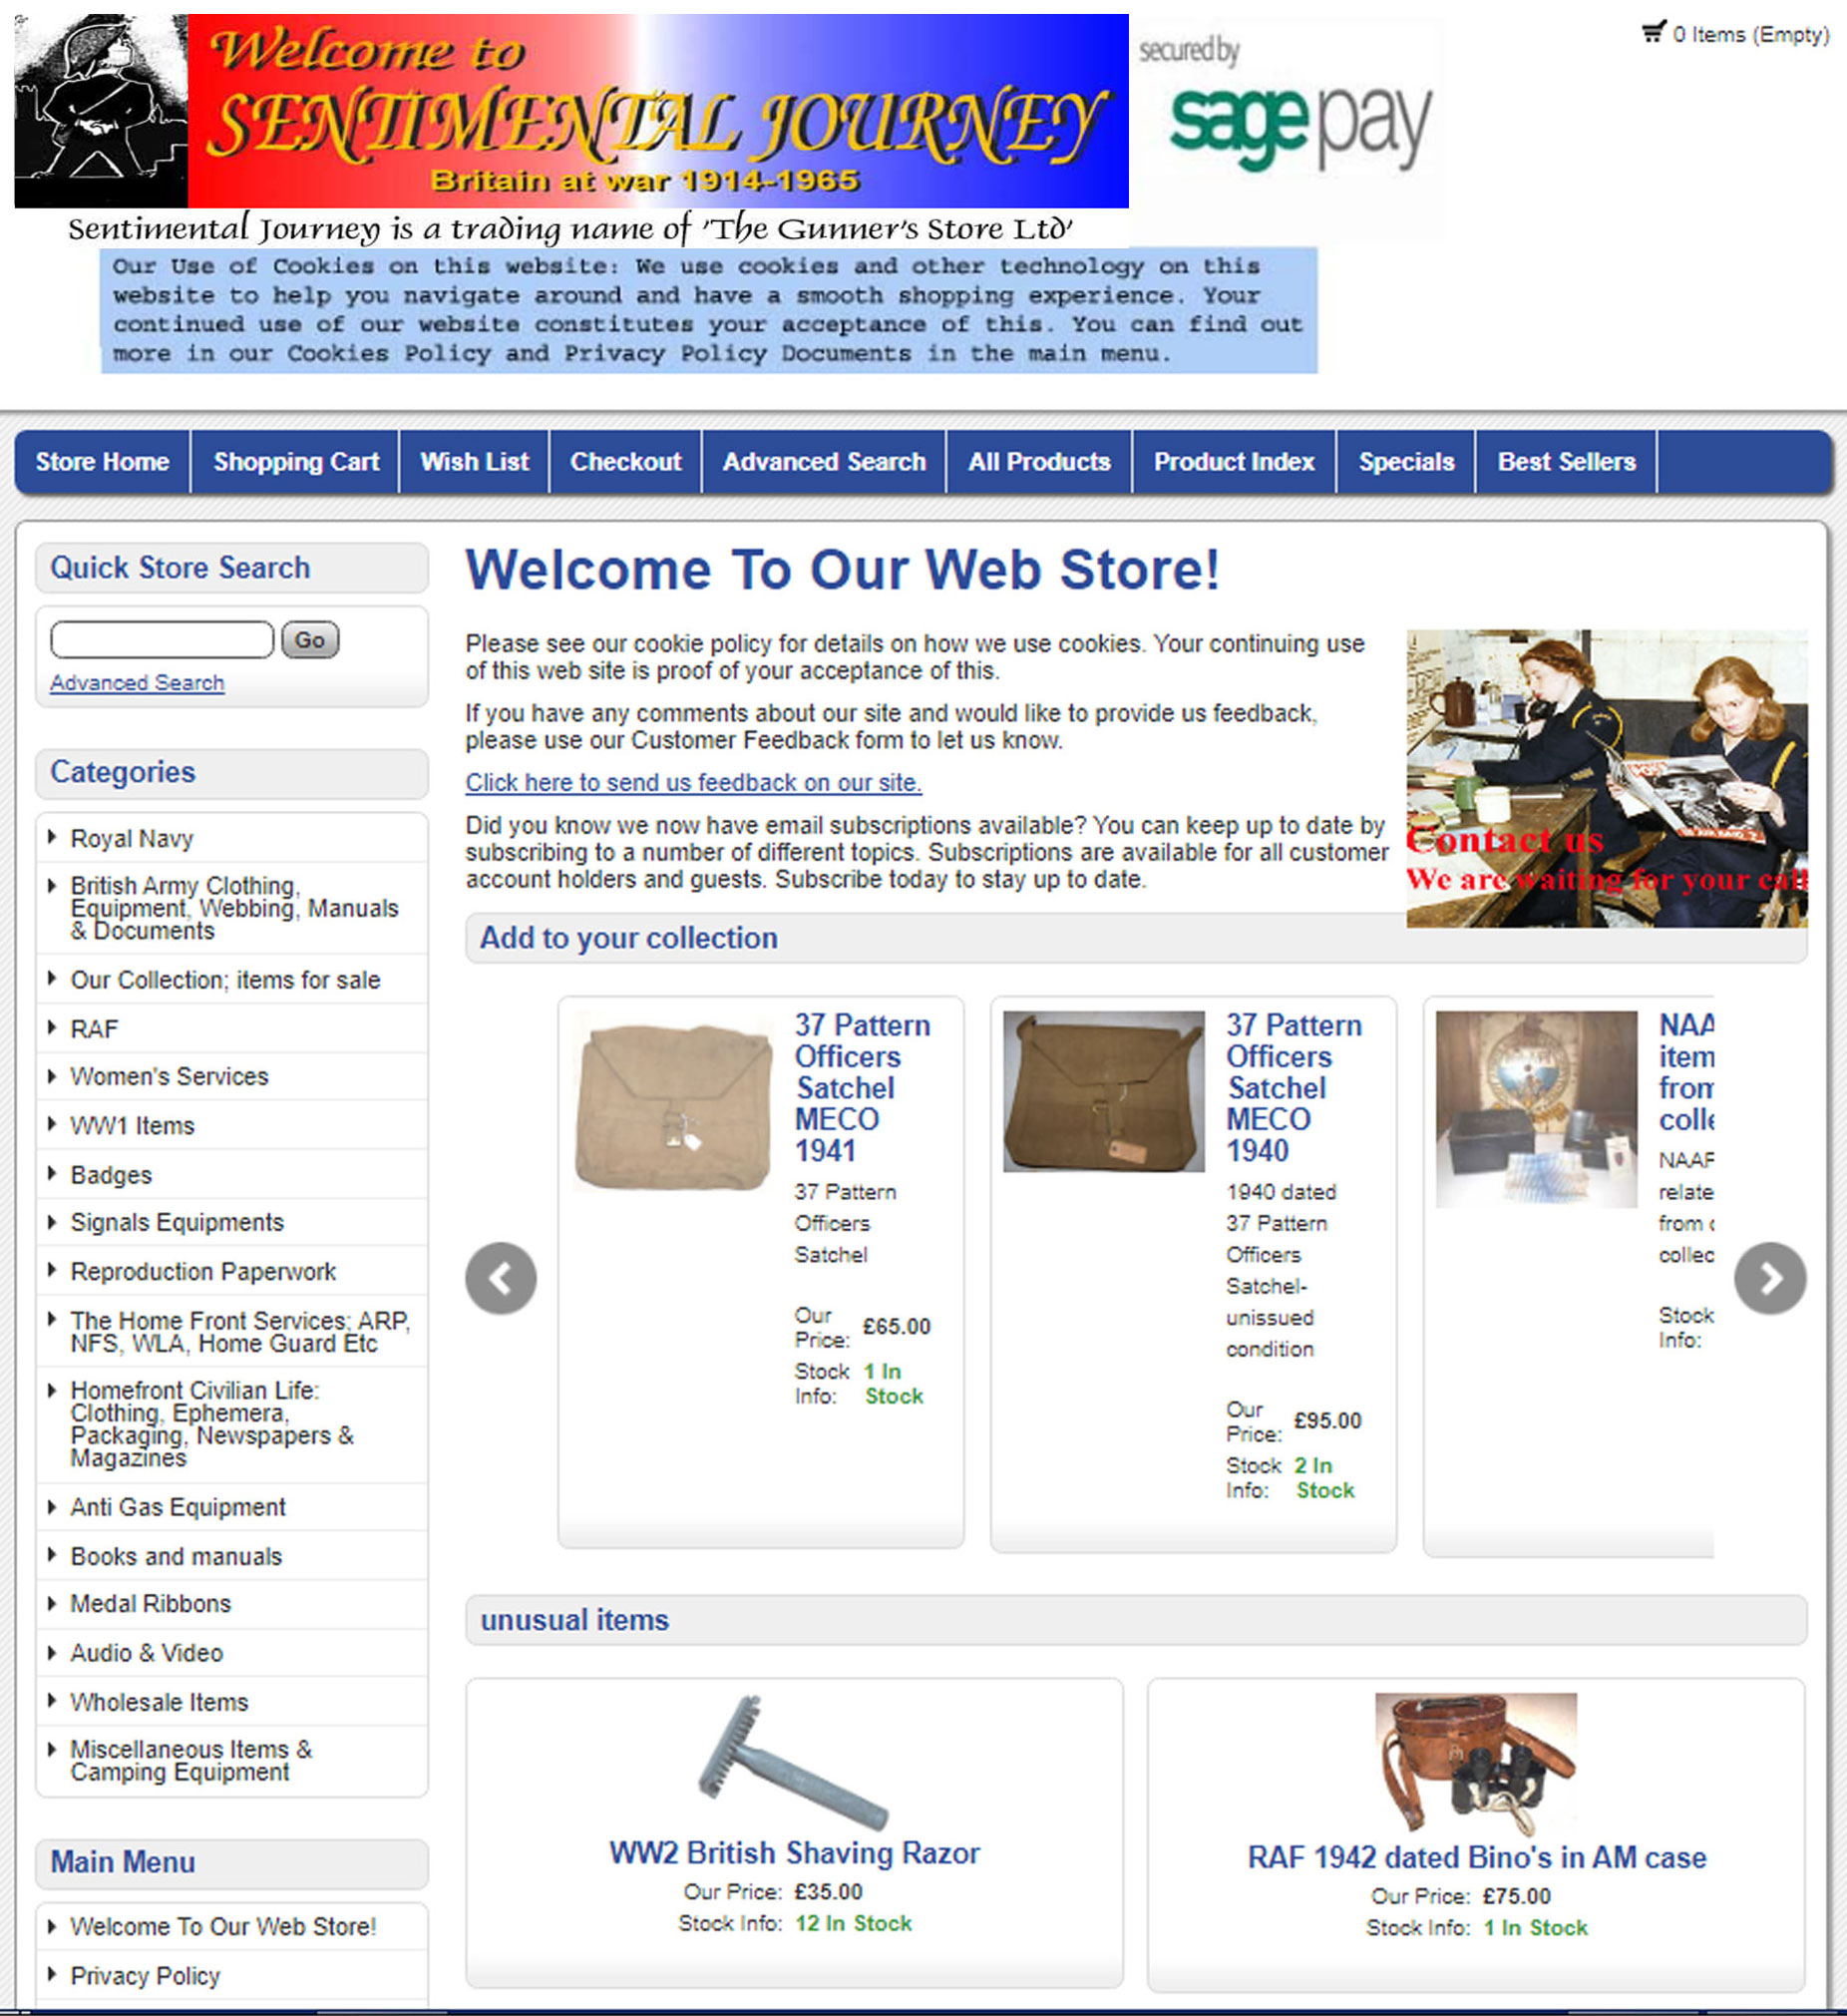 Web shop home page image, click to enter shop